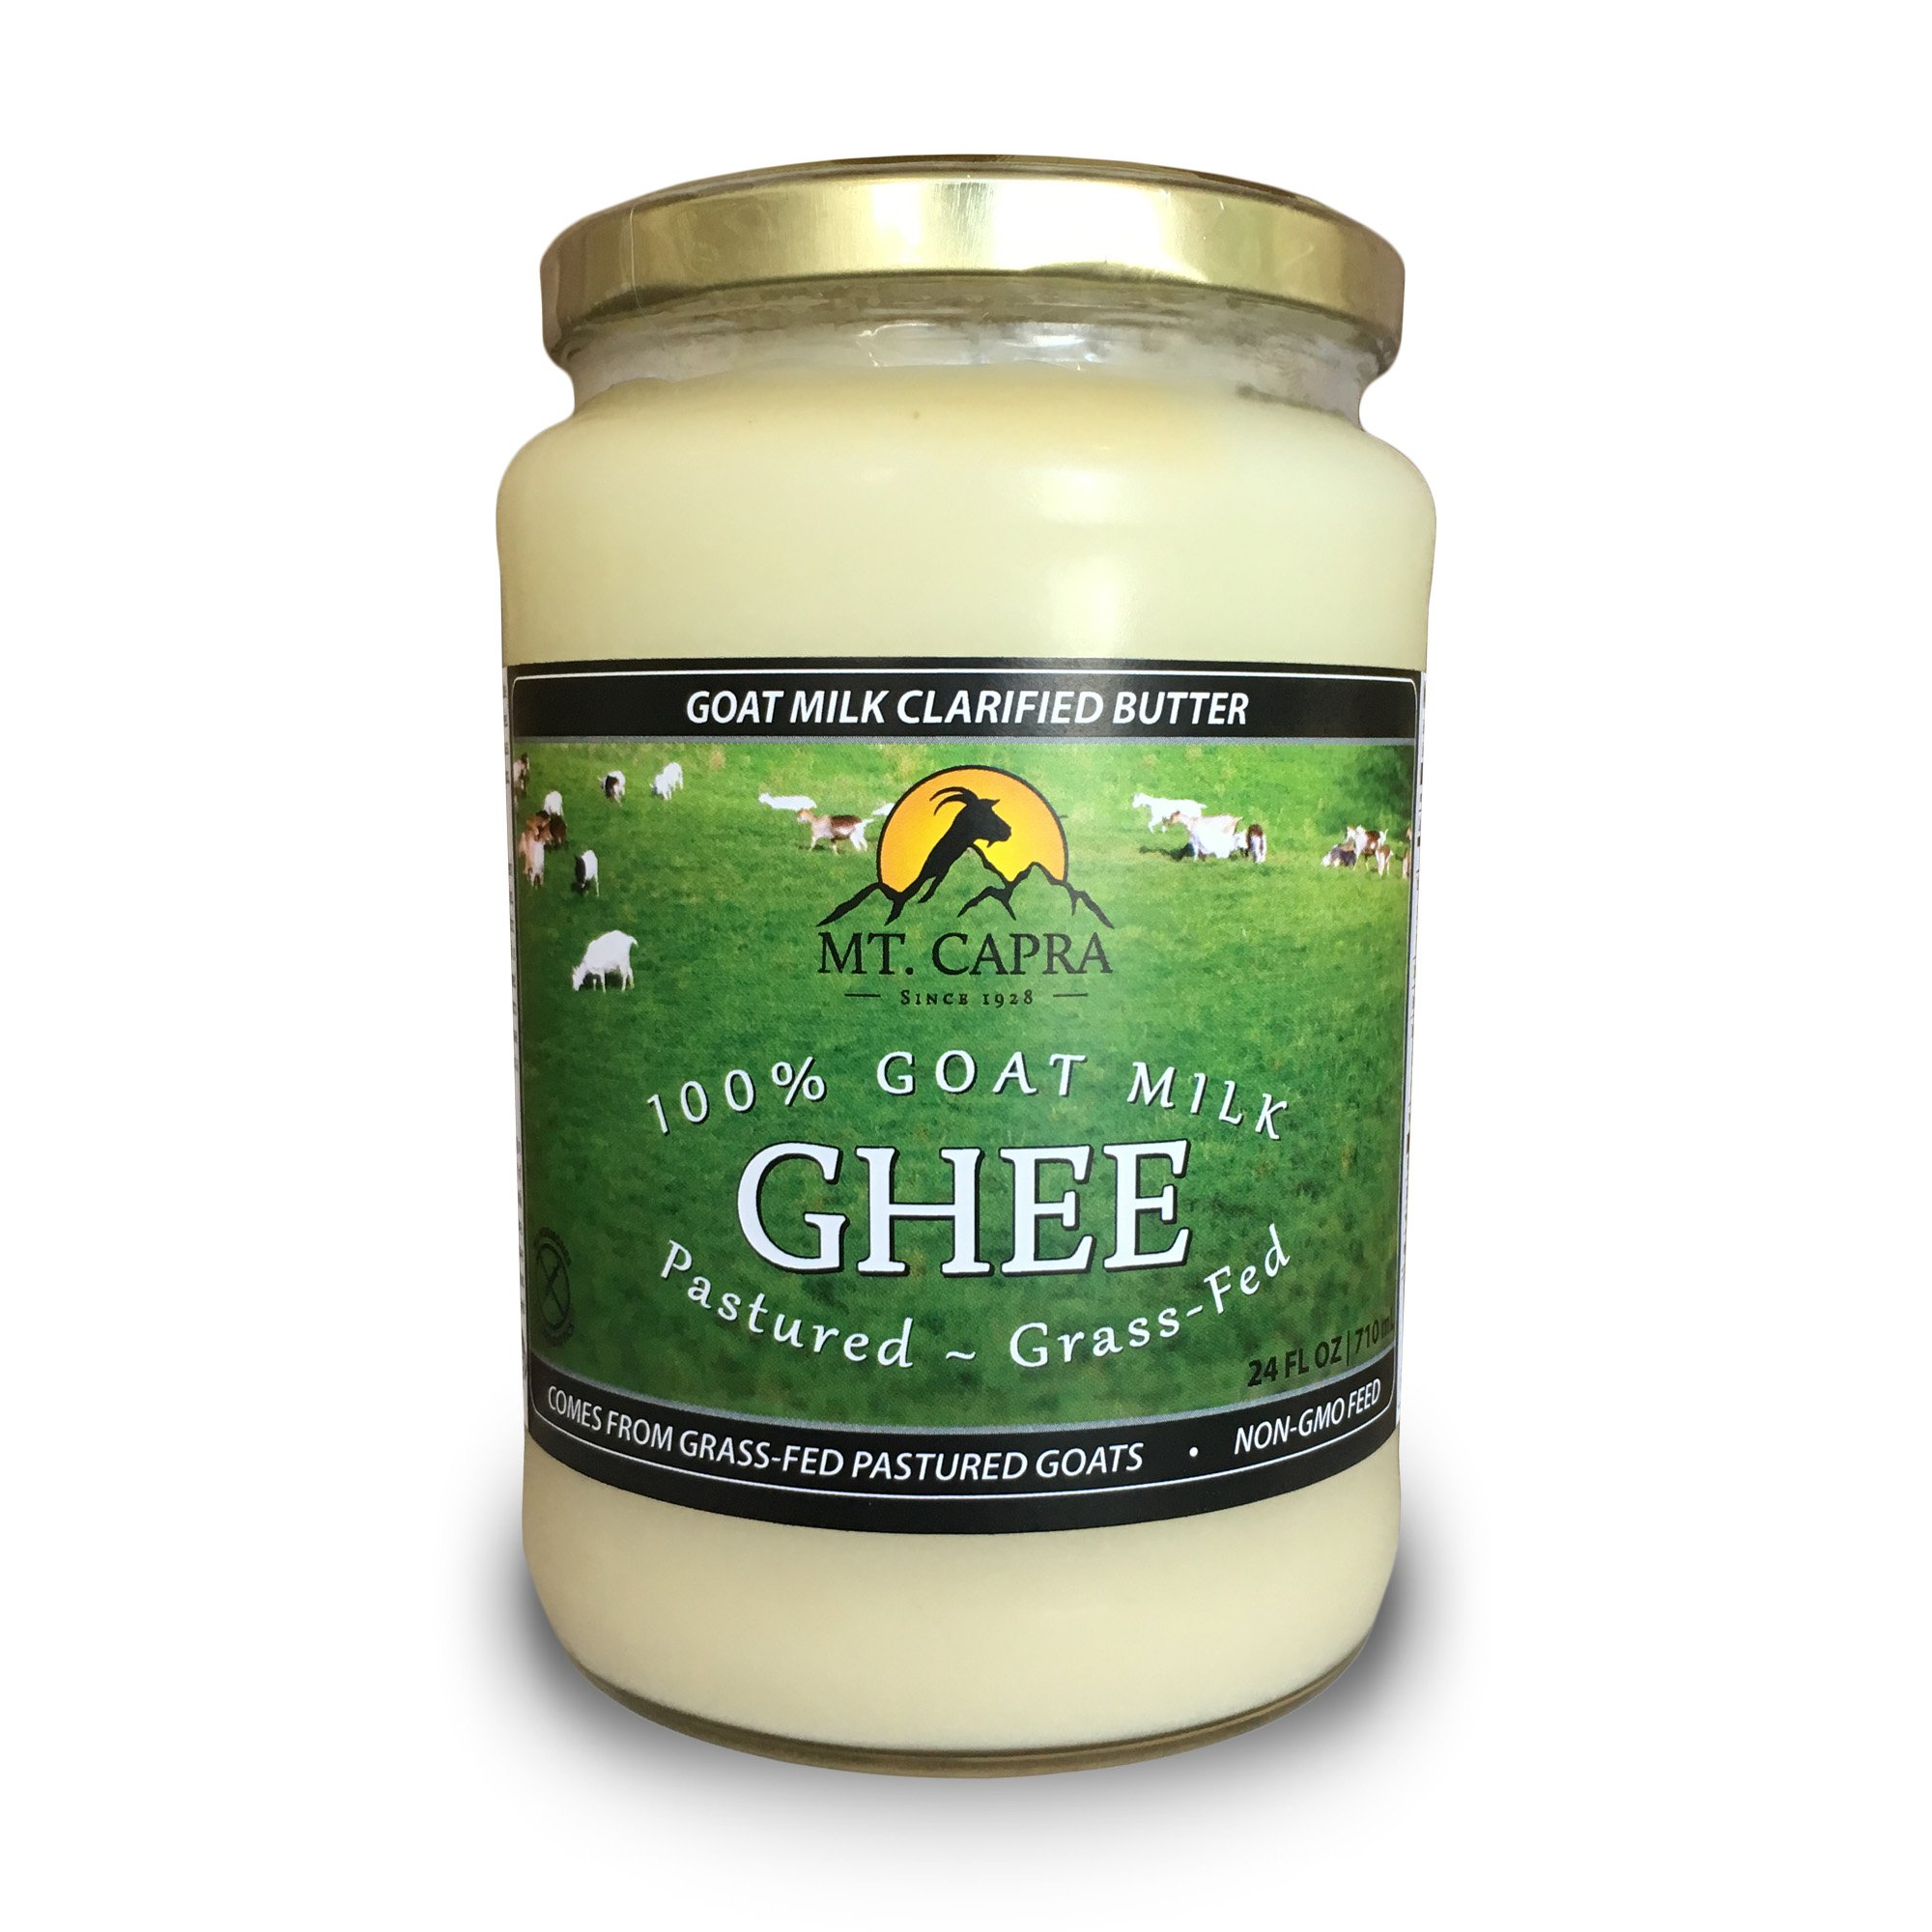 Goat Milk Ghee by Mt. Capra | Grass Fed Clarified Butter High in MCT Oil Perfect for Bulletproof Coffee, Keto, Paleo, and Whole 30 Diets | Pastured Raised and Unsalted | (24 fl oz)